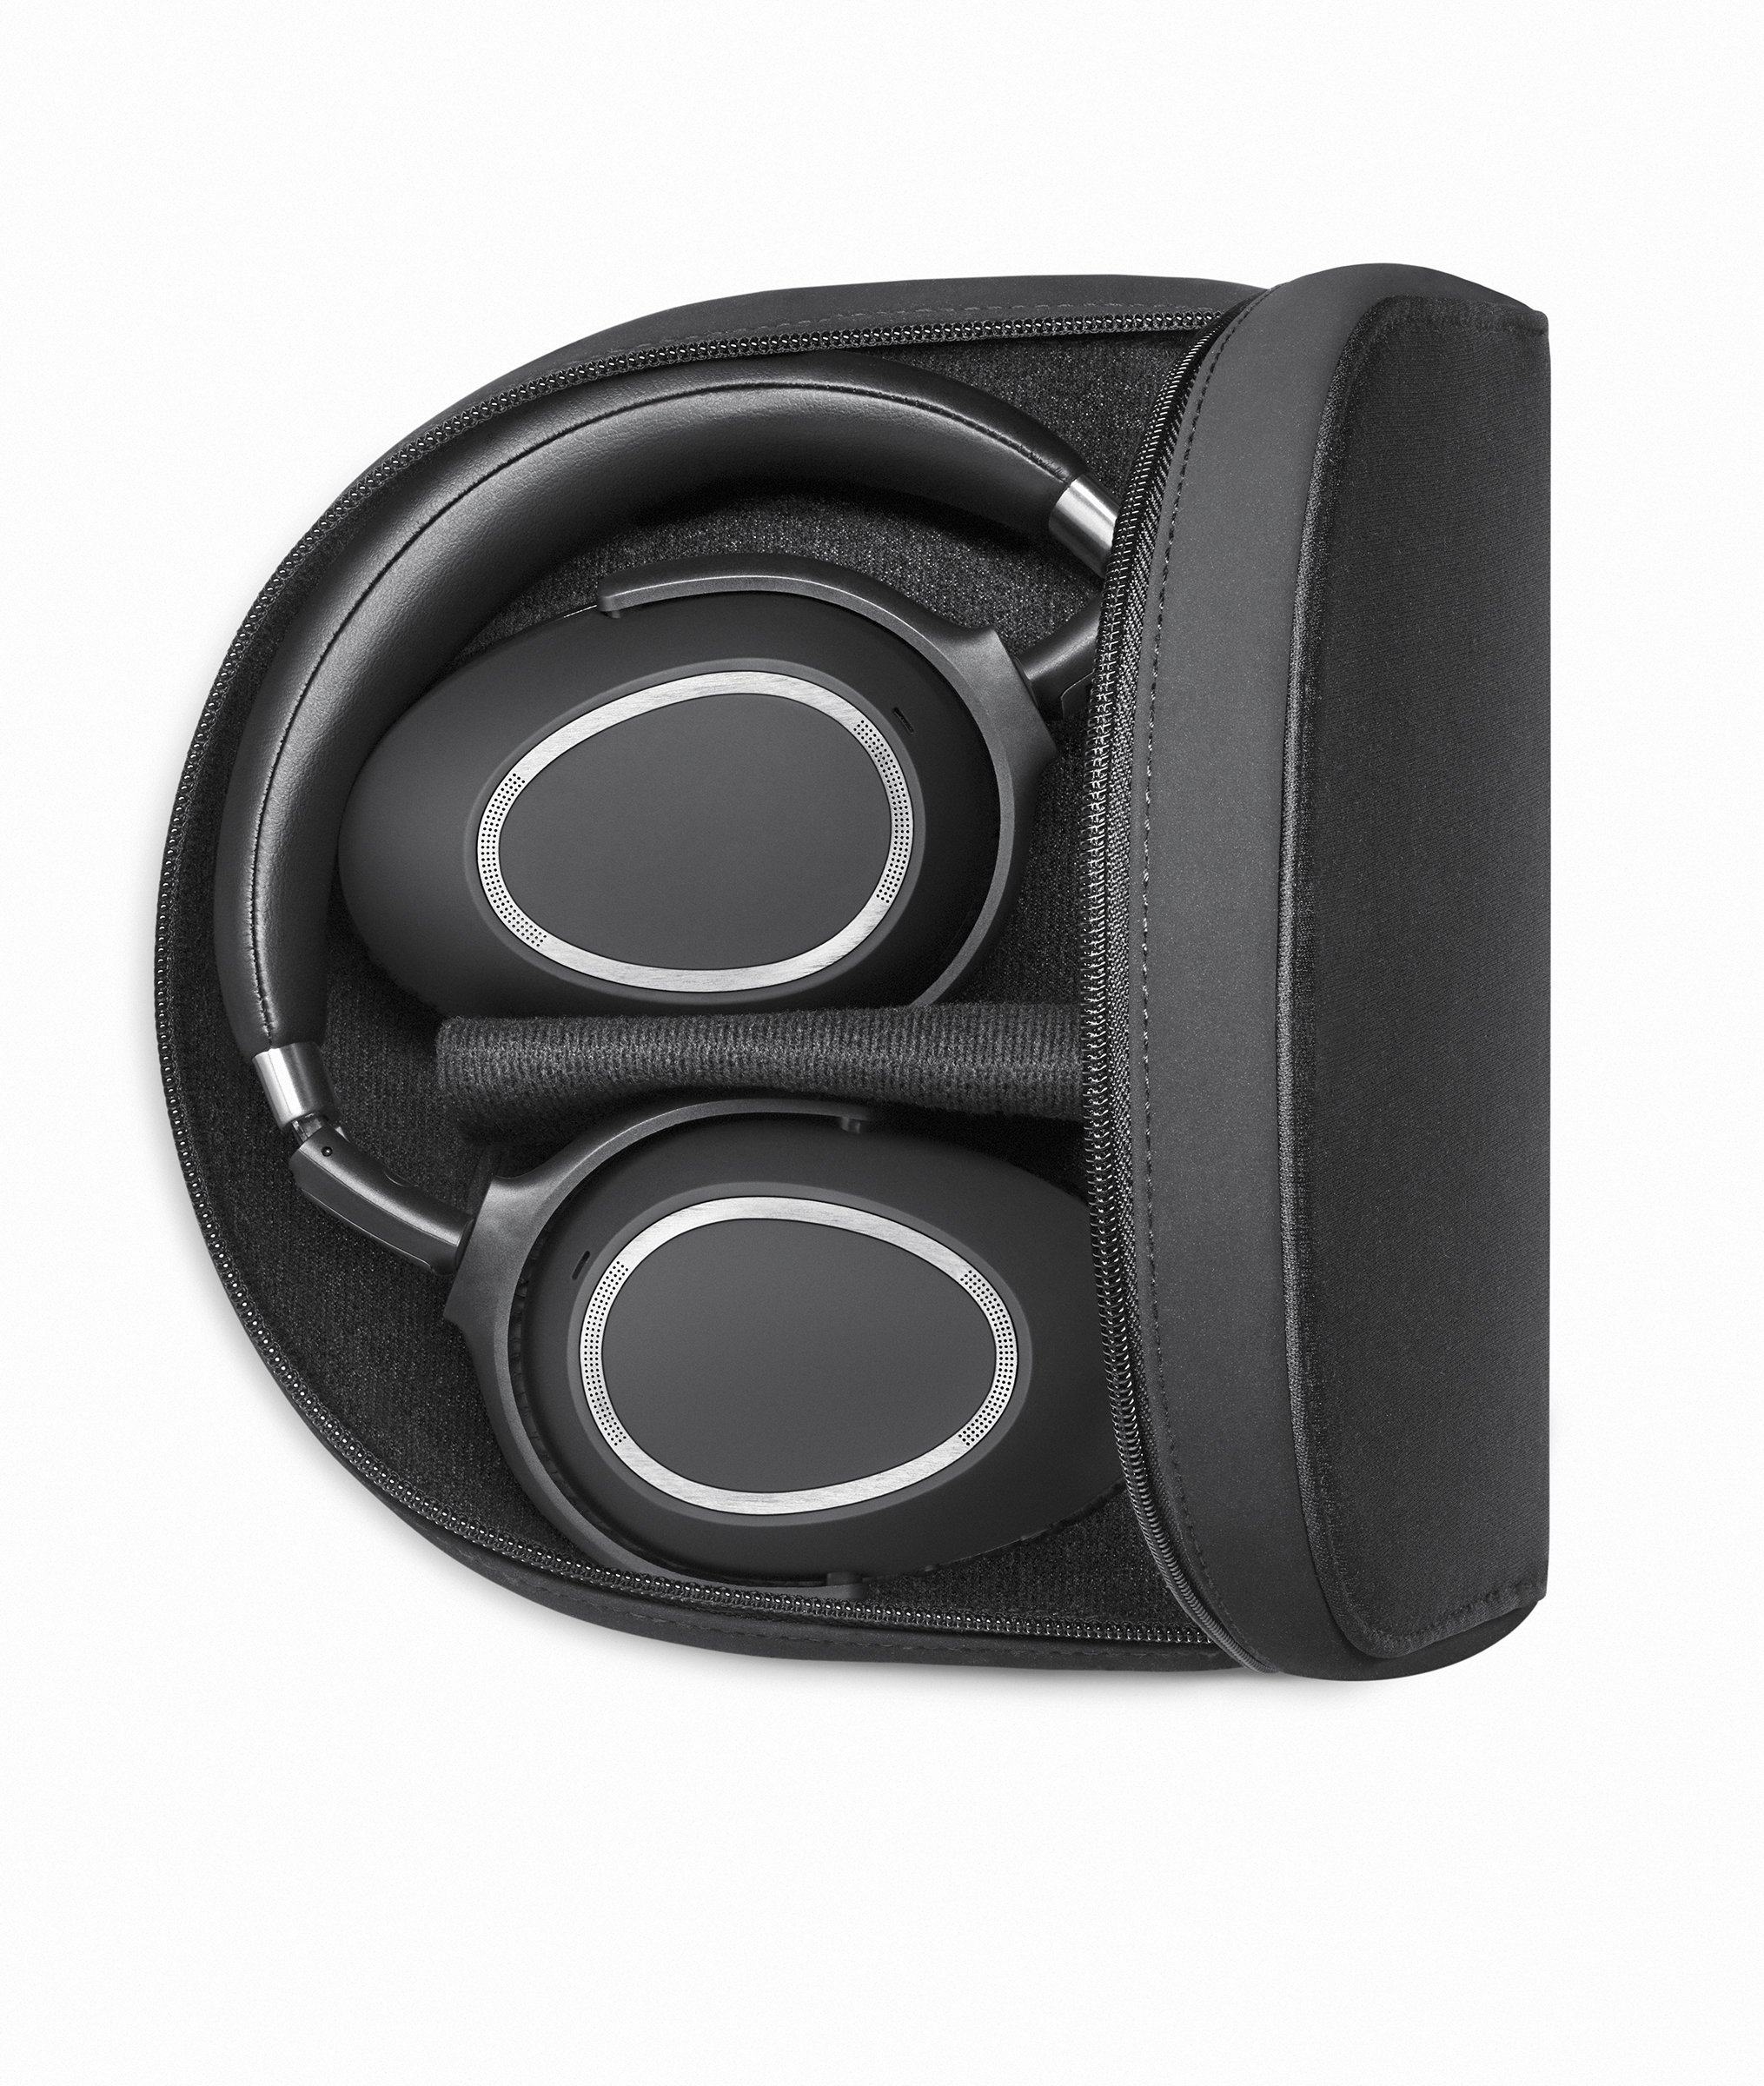 Sennheiser PXC 550 Wireless – NoiseGard Adaptive Noise Cancelling, Bluetooth Headphone with Touch Sensitive Control and 30-Hour Battery Life by Sennheiser (Image #6)